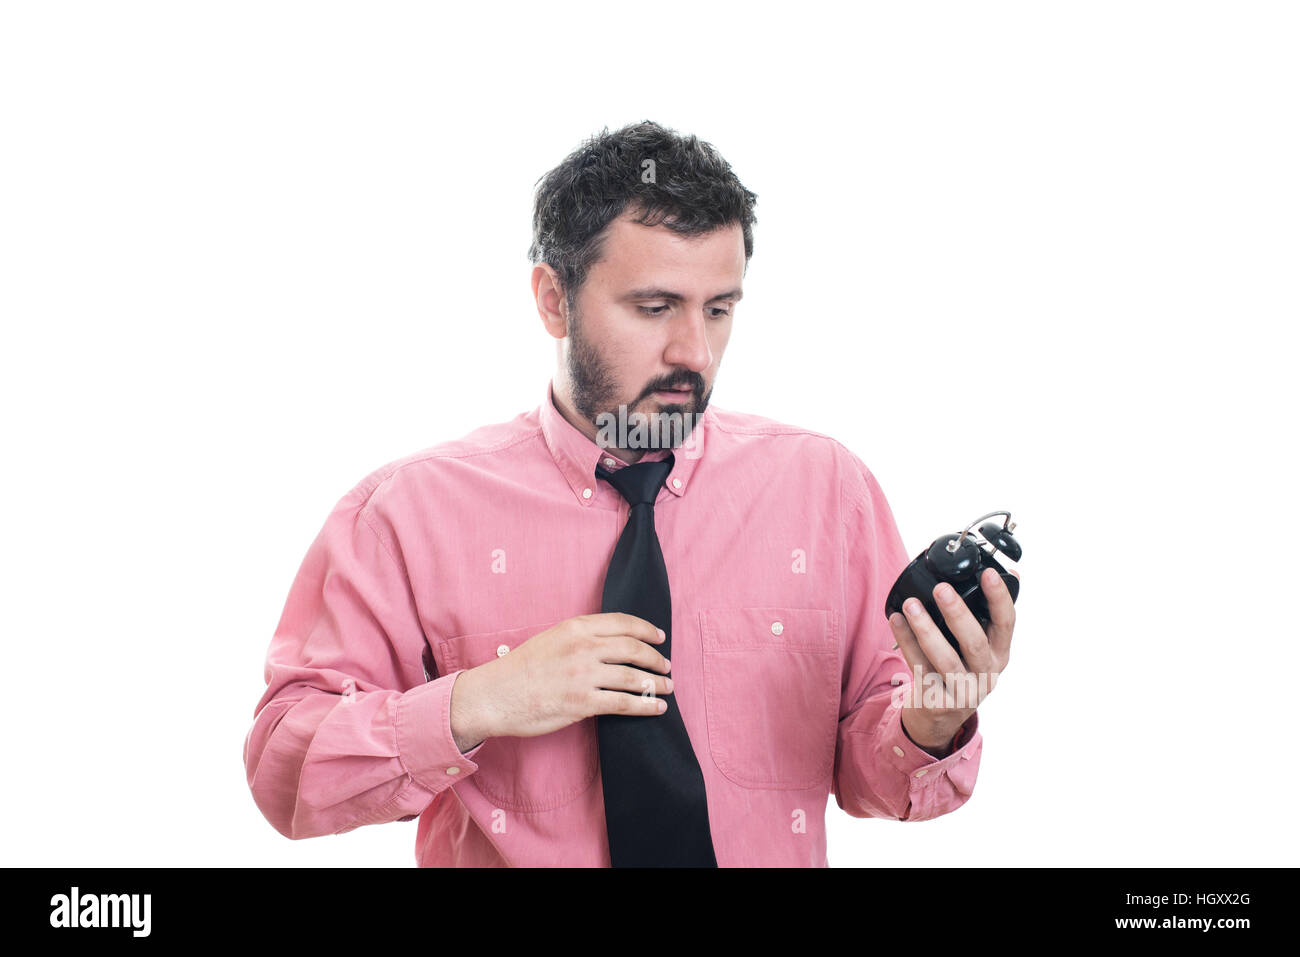 Angry young man holding alarm clock Stock Photo